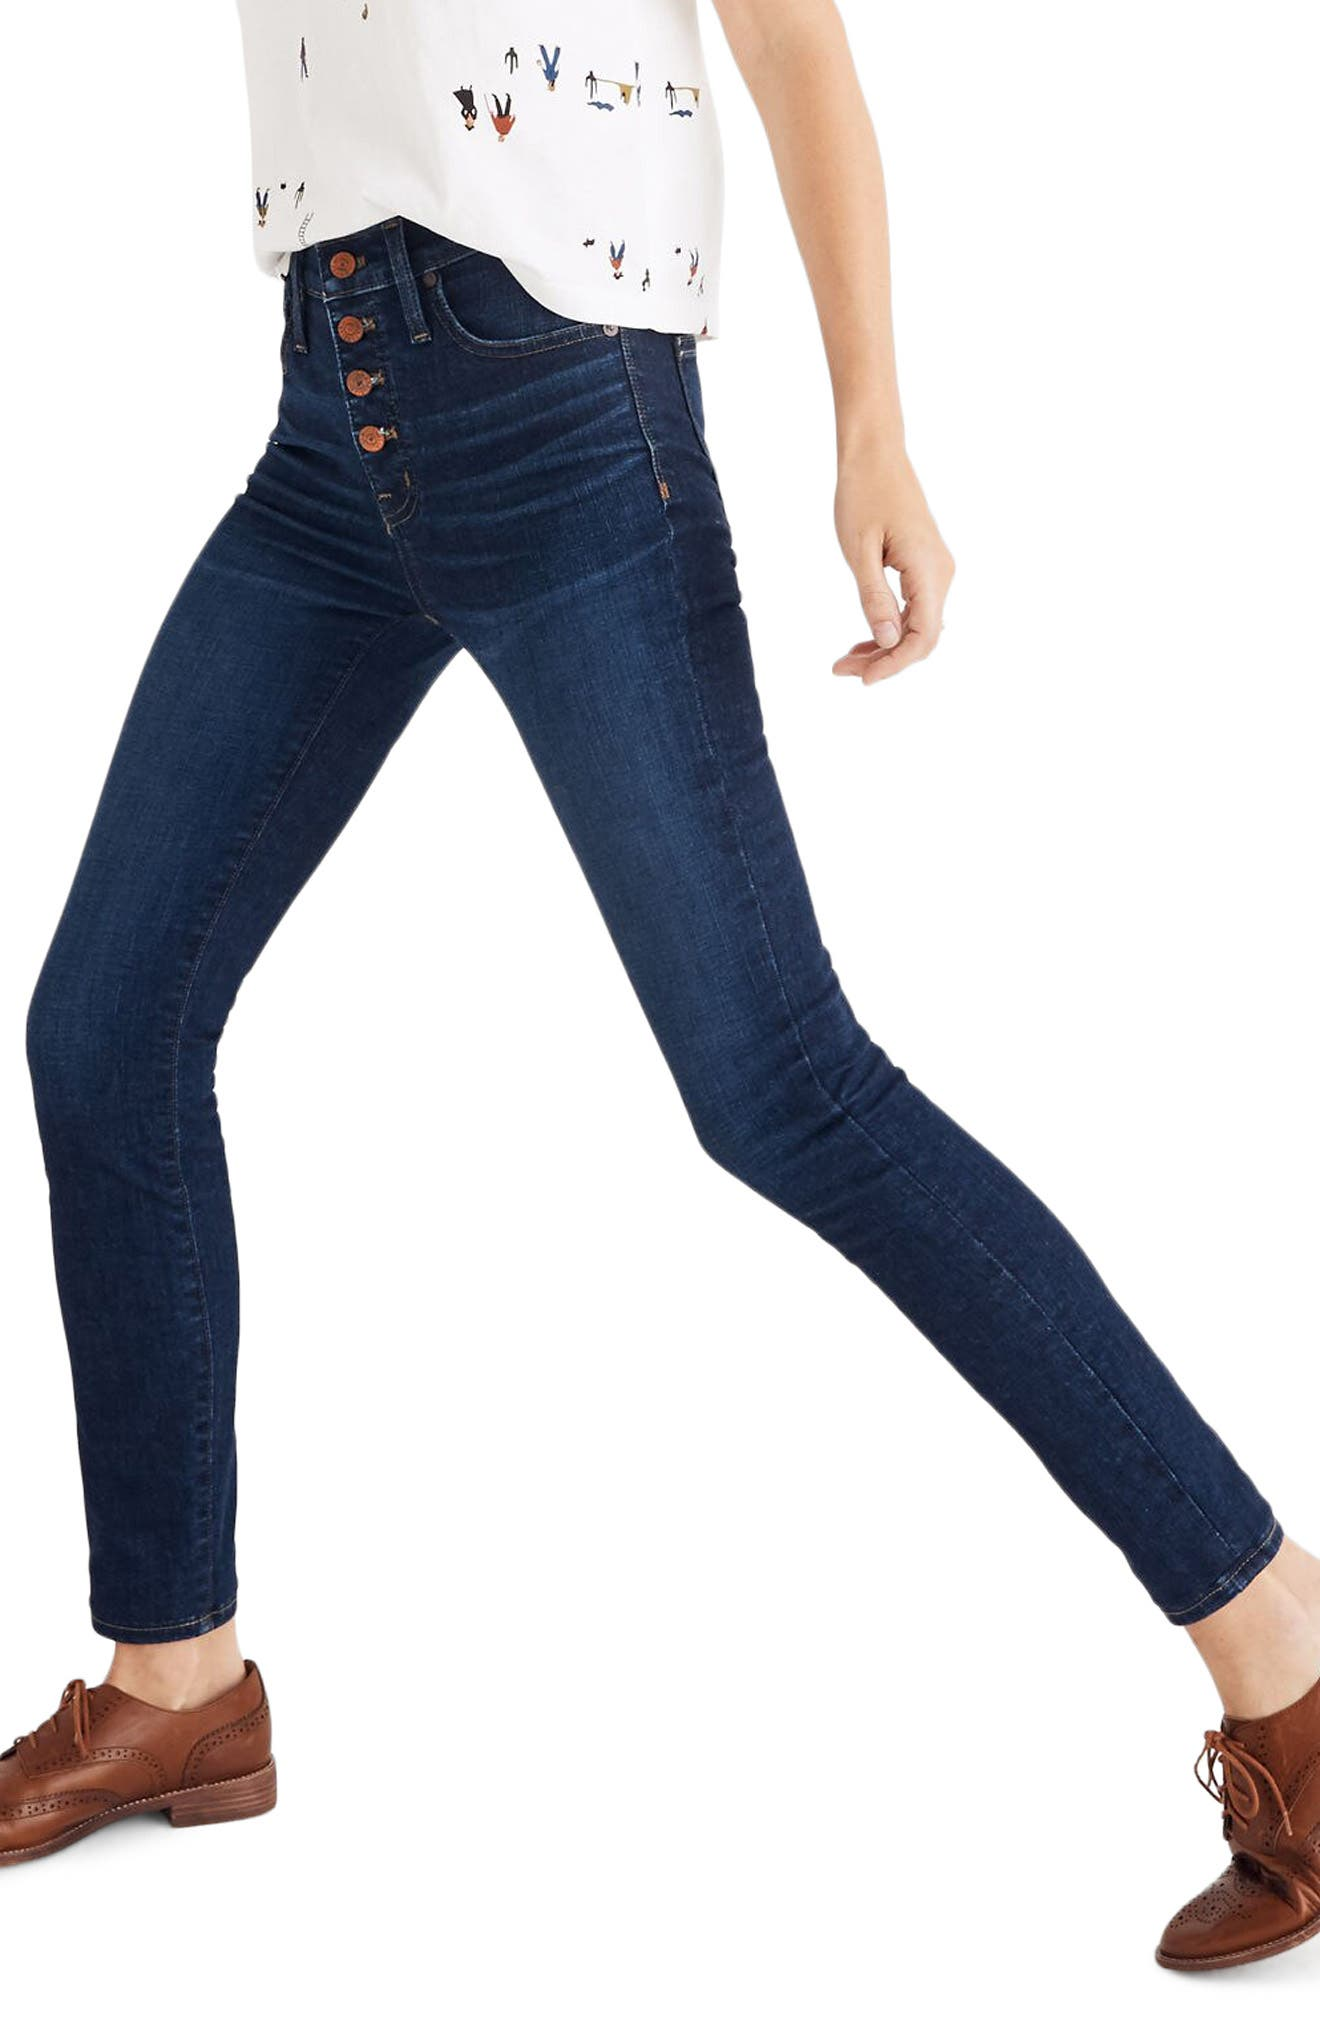 Madewell Button Front Mid Rise Skinny Jeans (Hayes) (Regular & Plus Size)